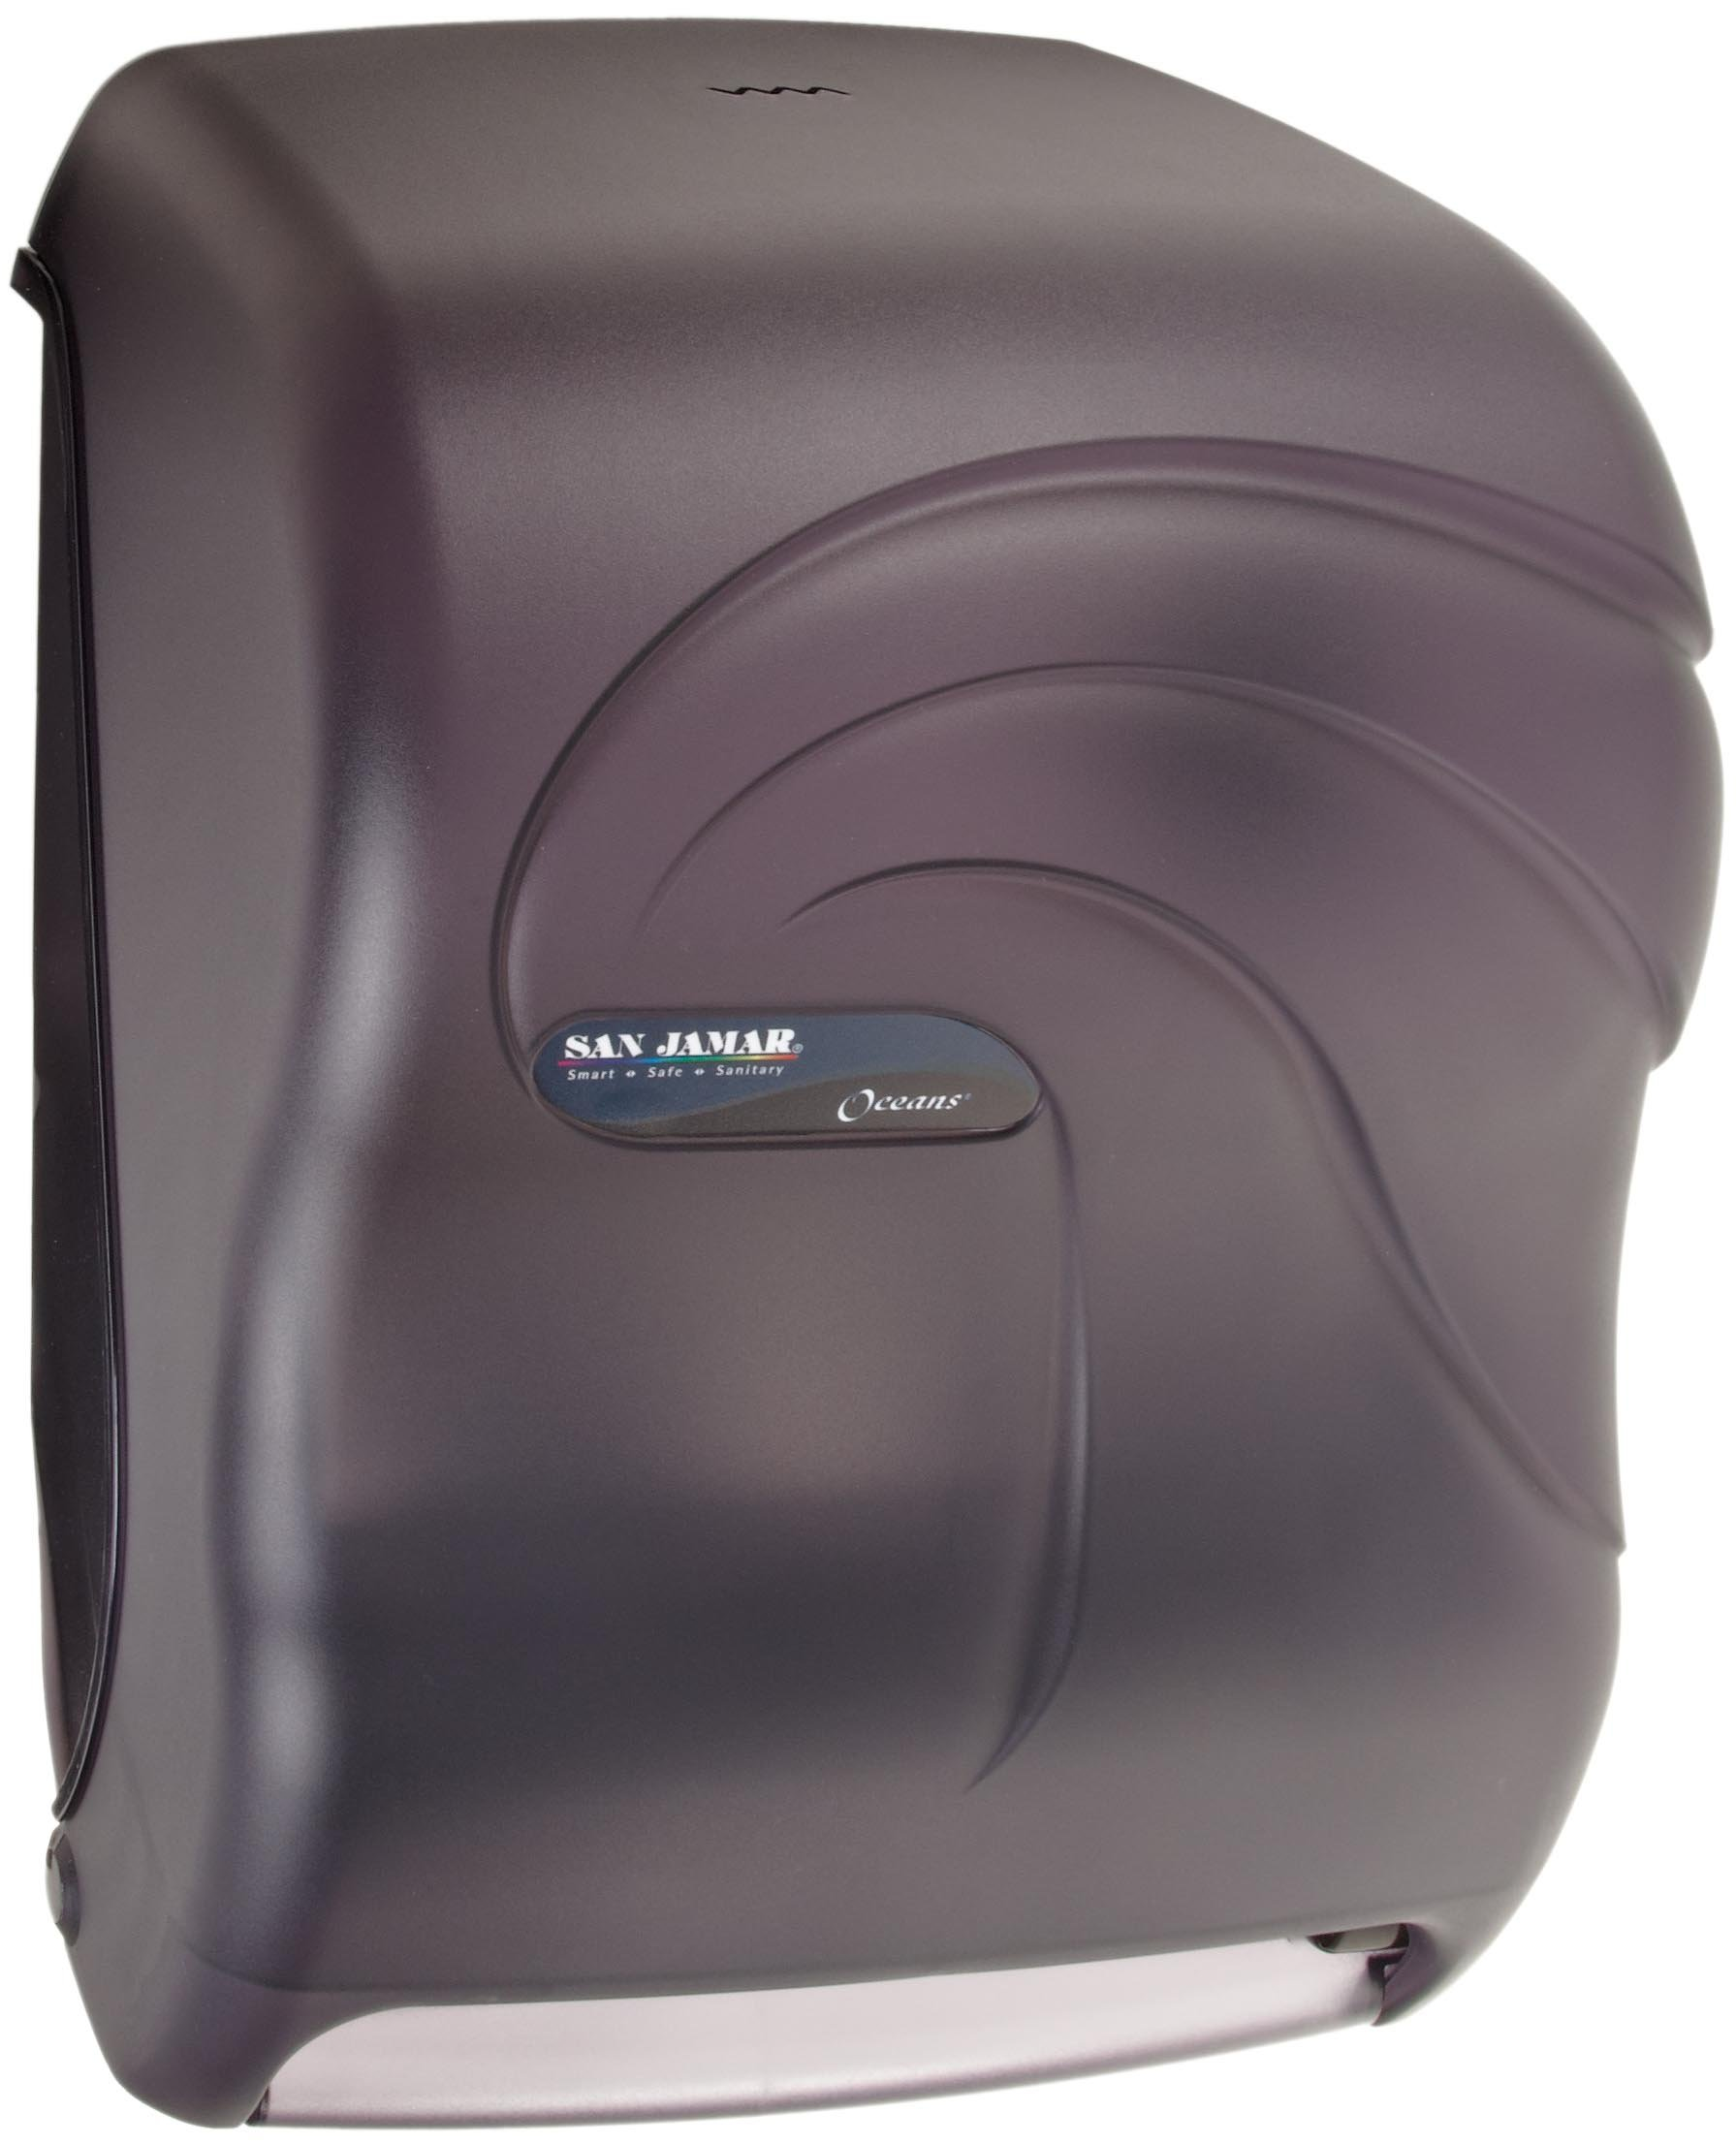 Oceans T1490TBK 11-3/4'' Width x 15-1/2'' Height x 9-1/2'' Depth, Black Pearl Smart System with iQ Sensor Roll Towel Dispenser by Oceans